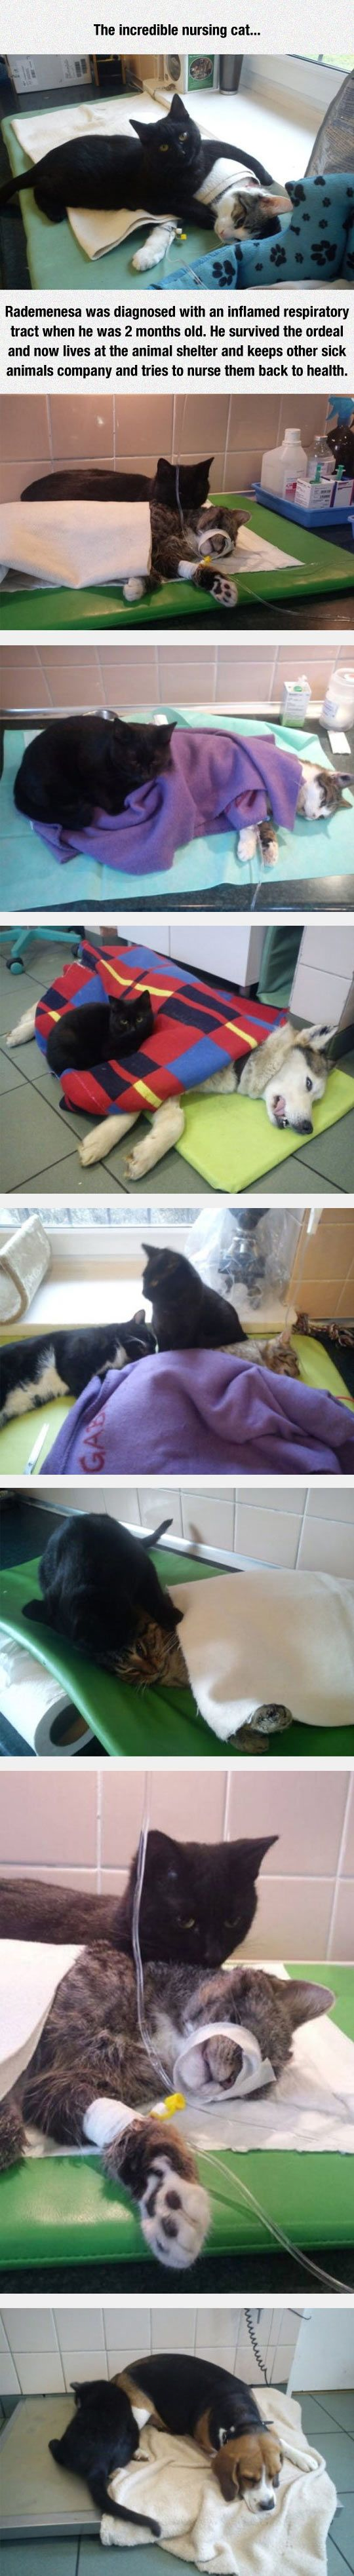 This black cat, Rademenesa, lives in an animal shelter .  He keeps sick cats company and tries to nurse them back to health.  Beautiful!